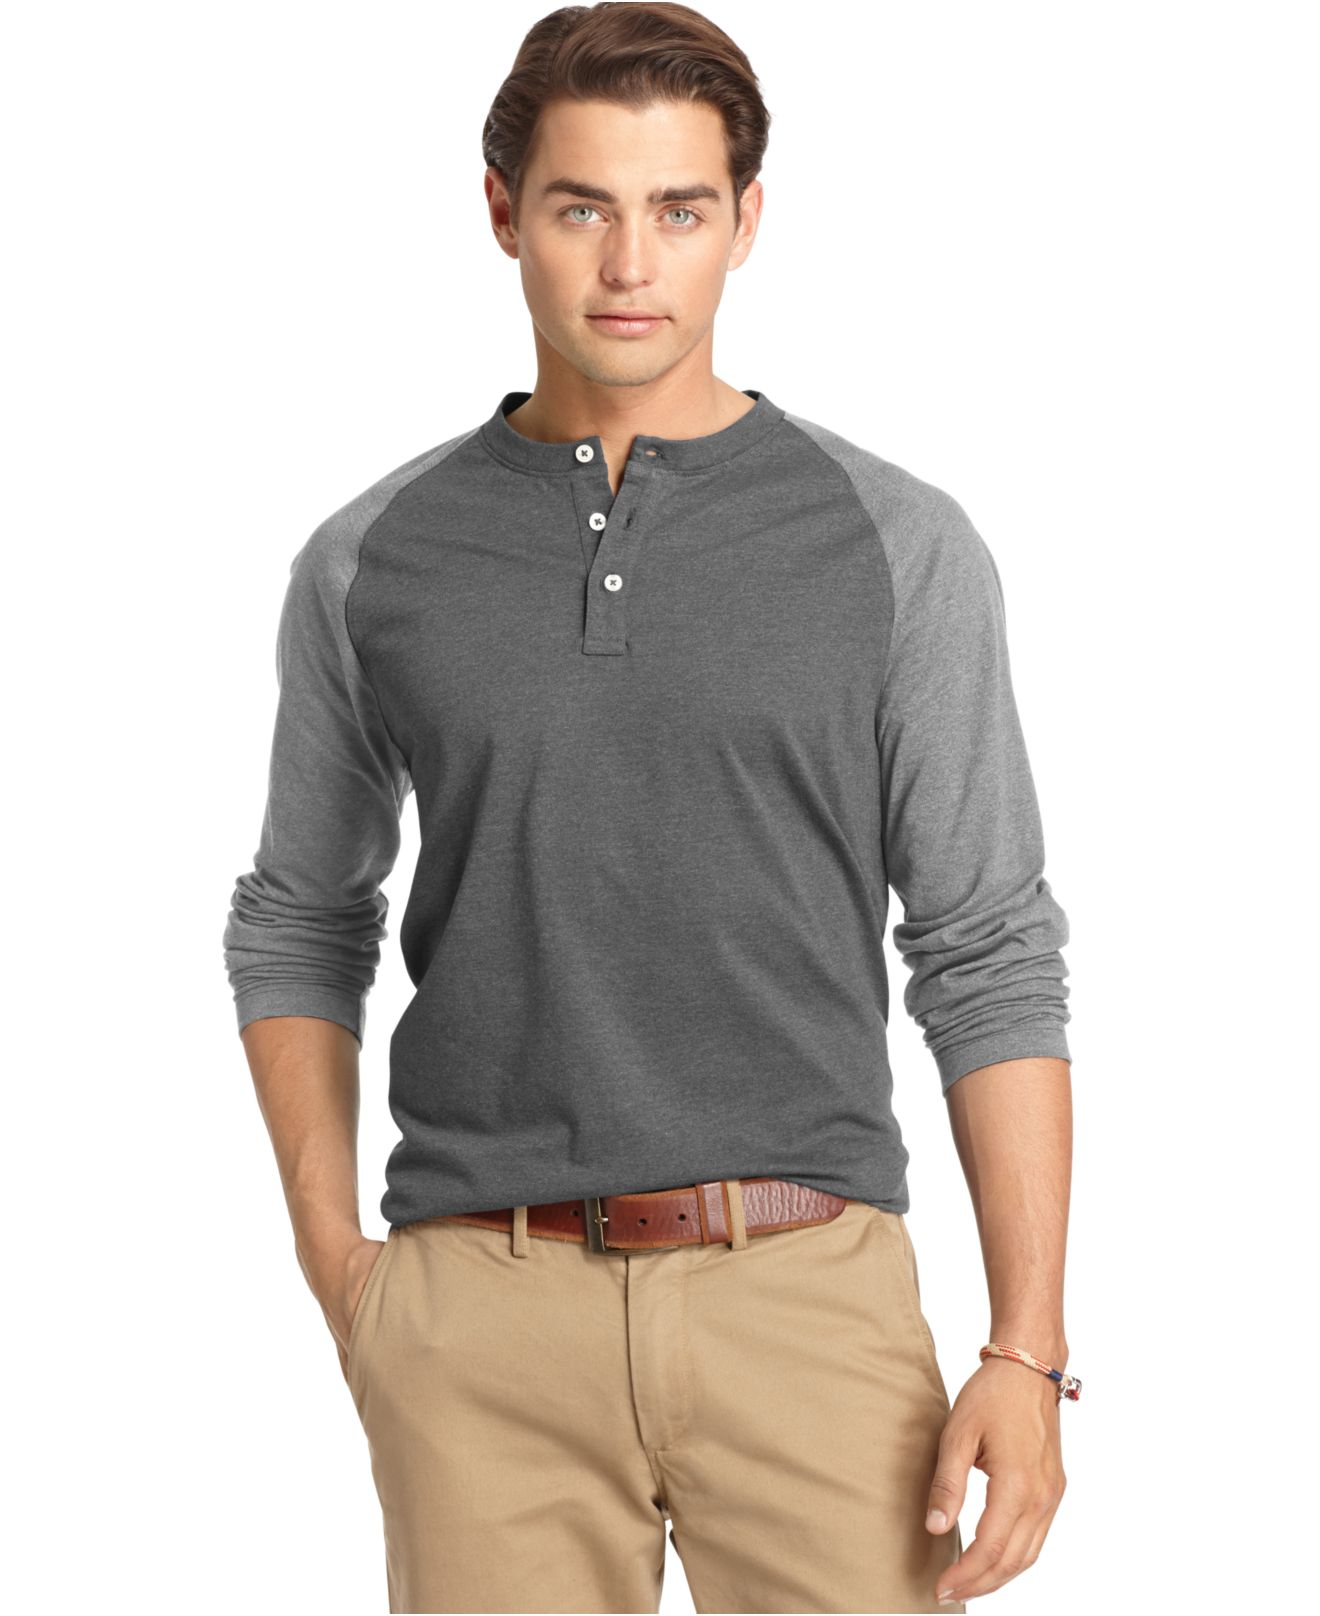 Lyst izod big and tall colorblocked long sleeve henley for Izod big and tall shirts